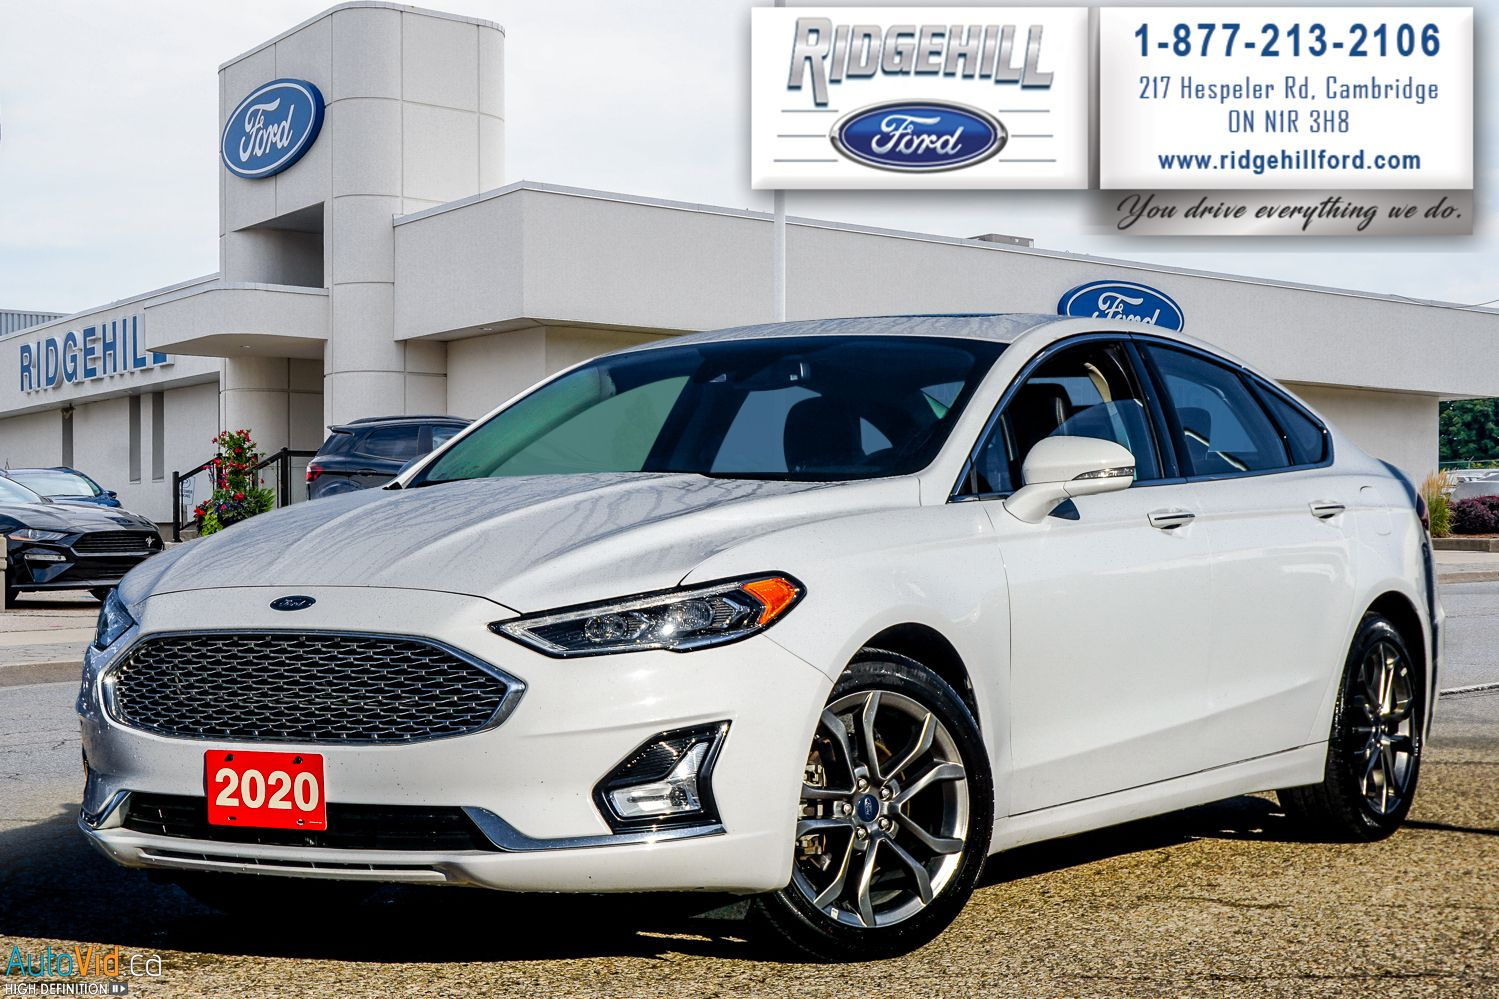 2020 Ford Fusion Hybrid Image